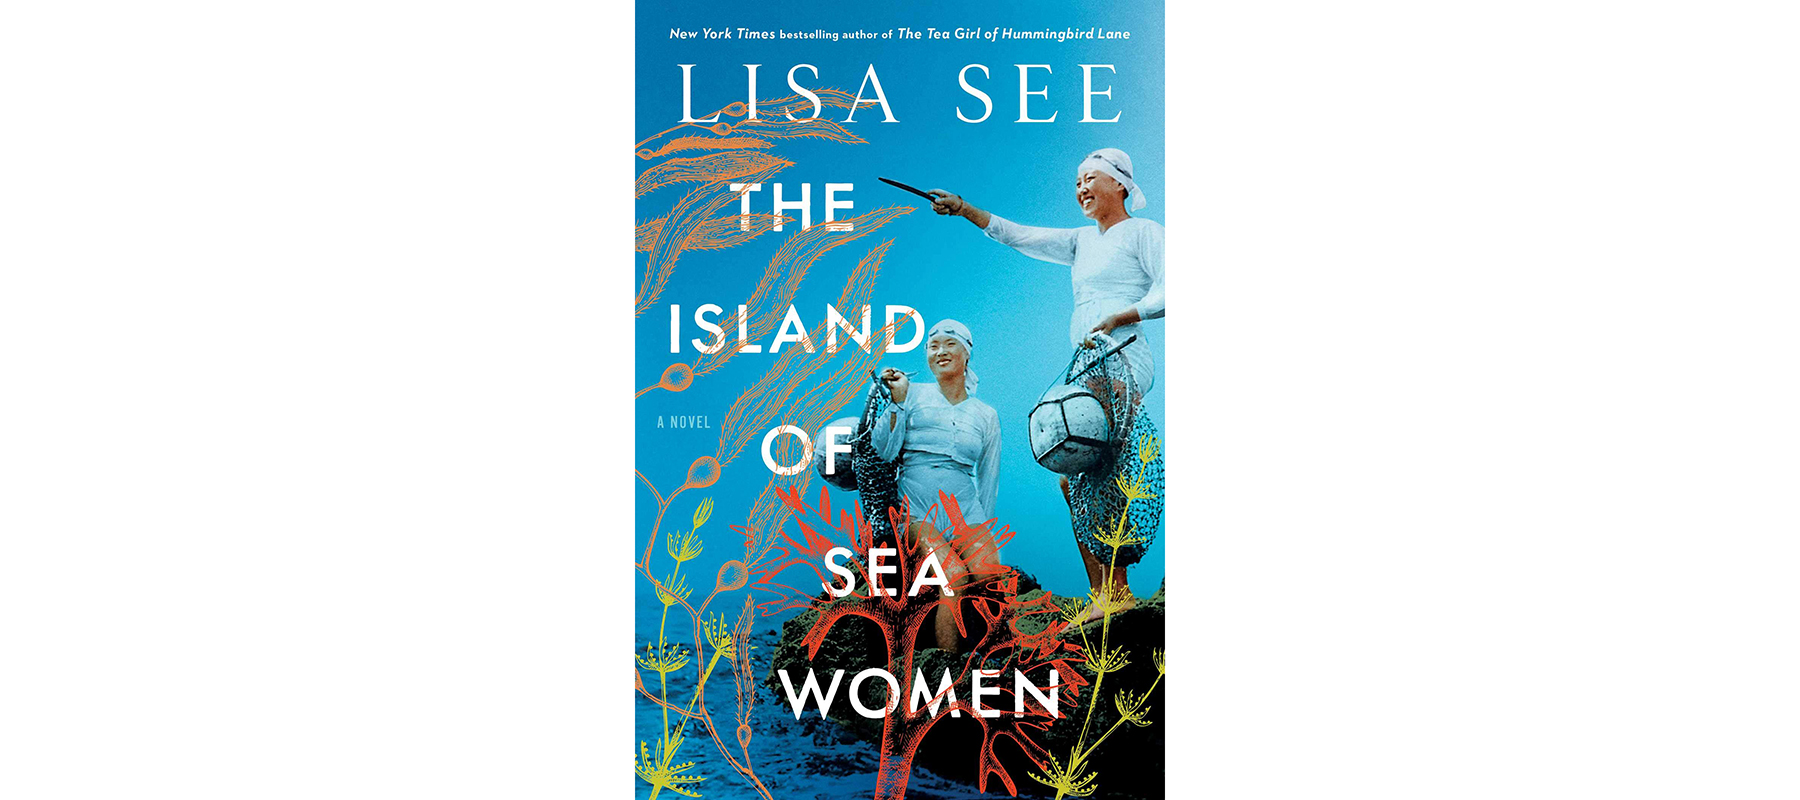 The Island of Sea Women, by Lisa See